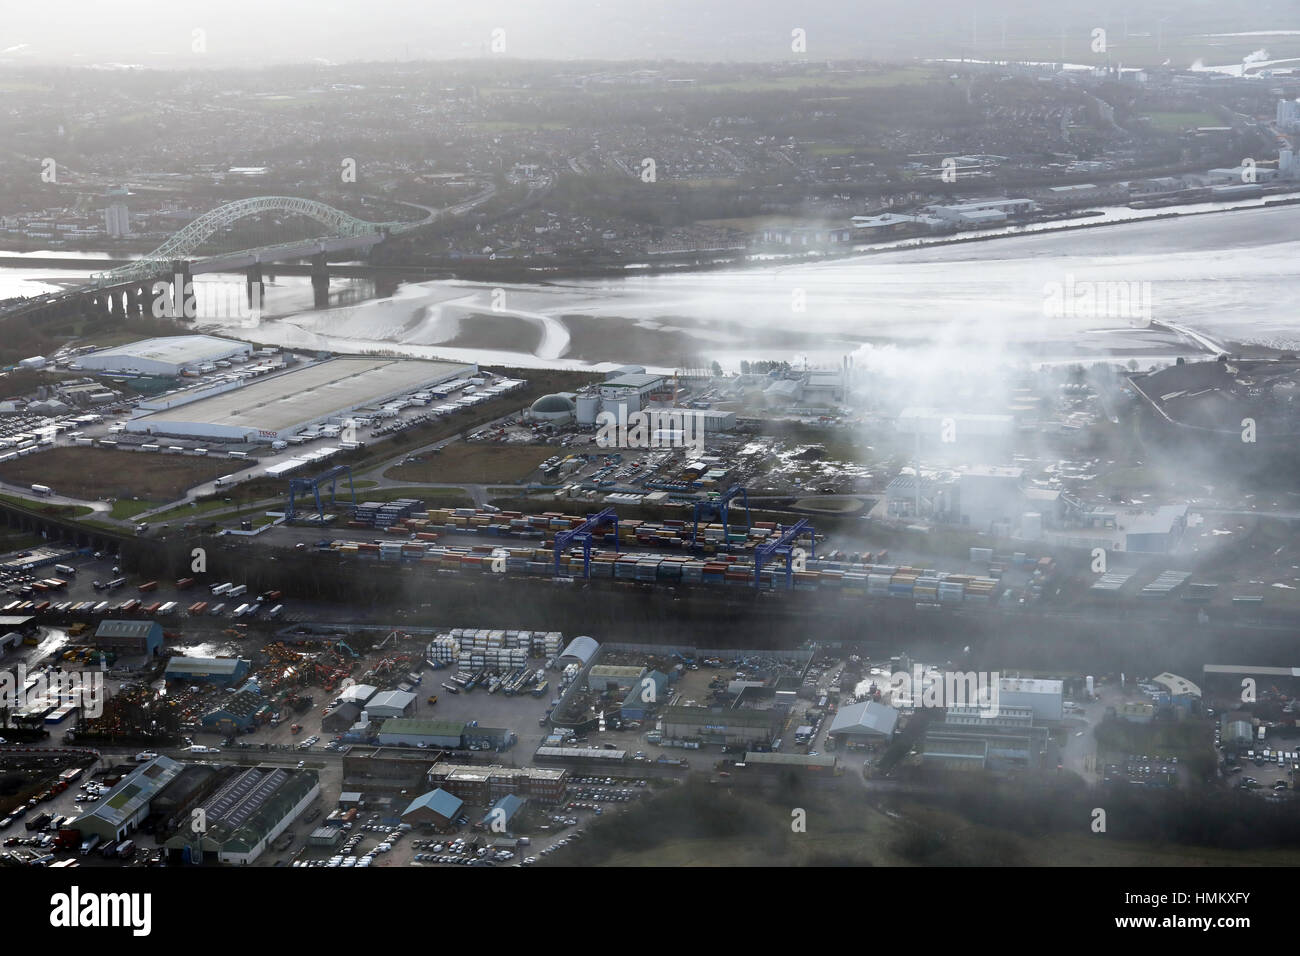 Aerial view of industrial smoke pollution at Widnes, UK - Stock Image